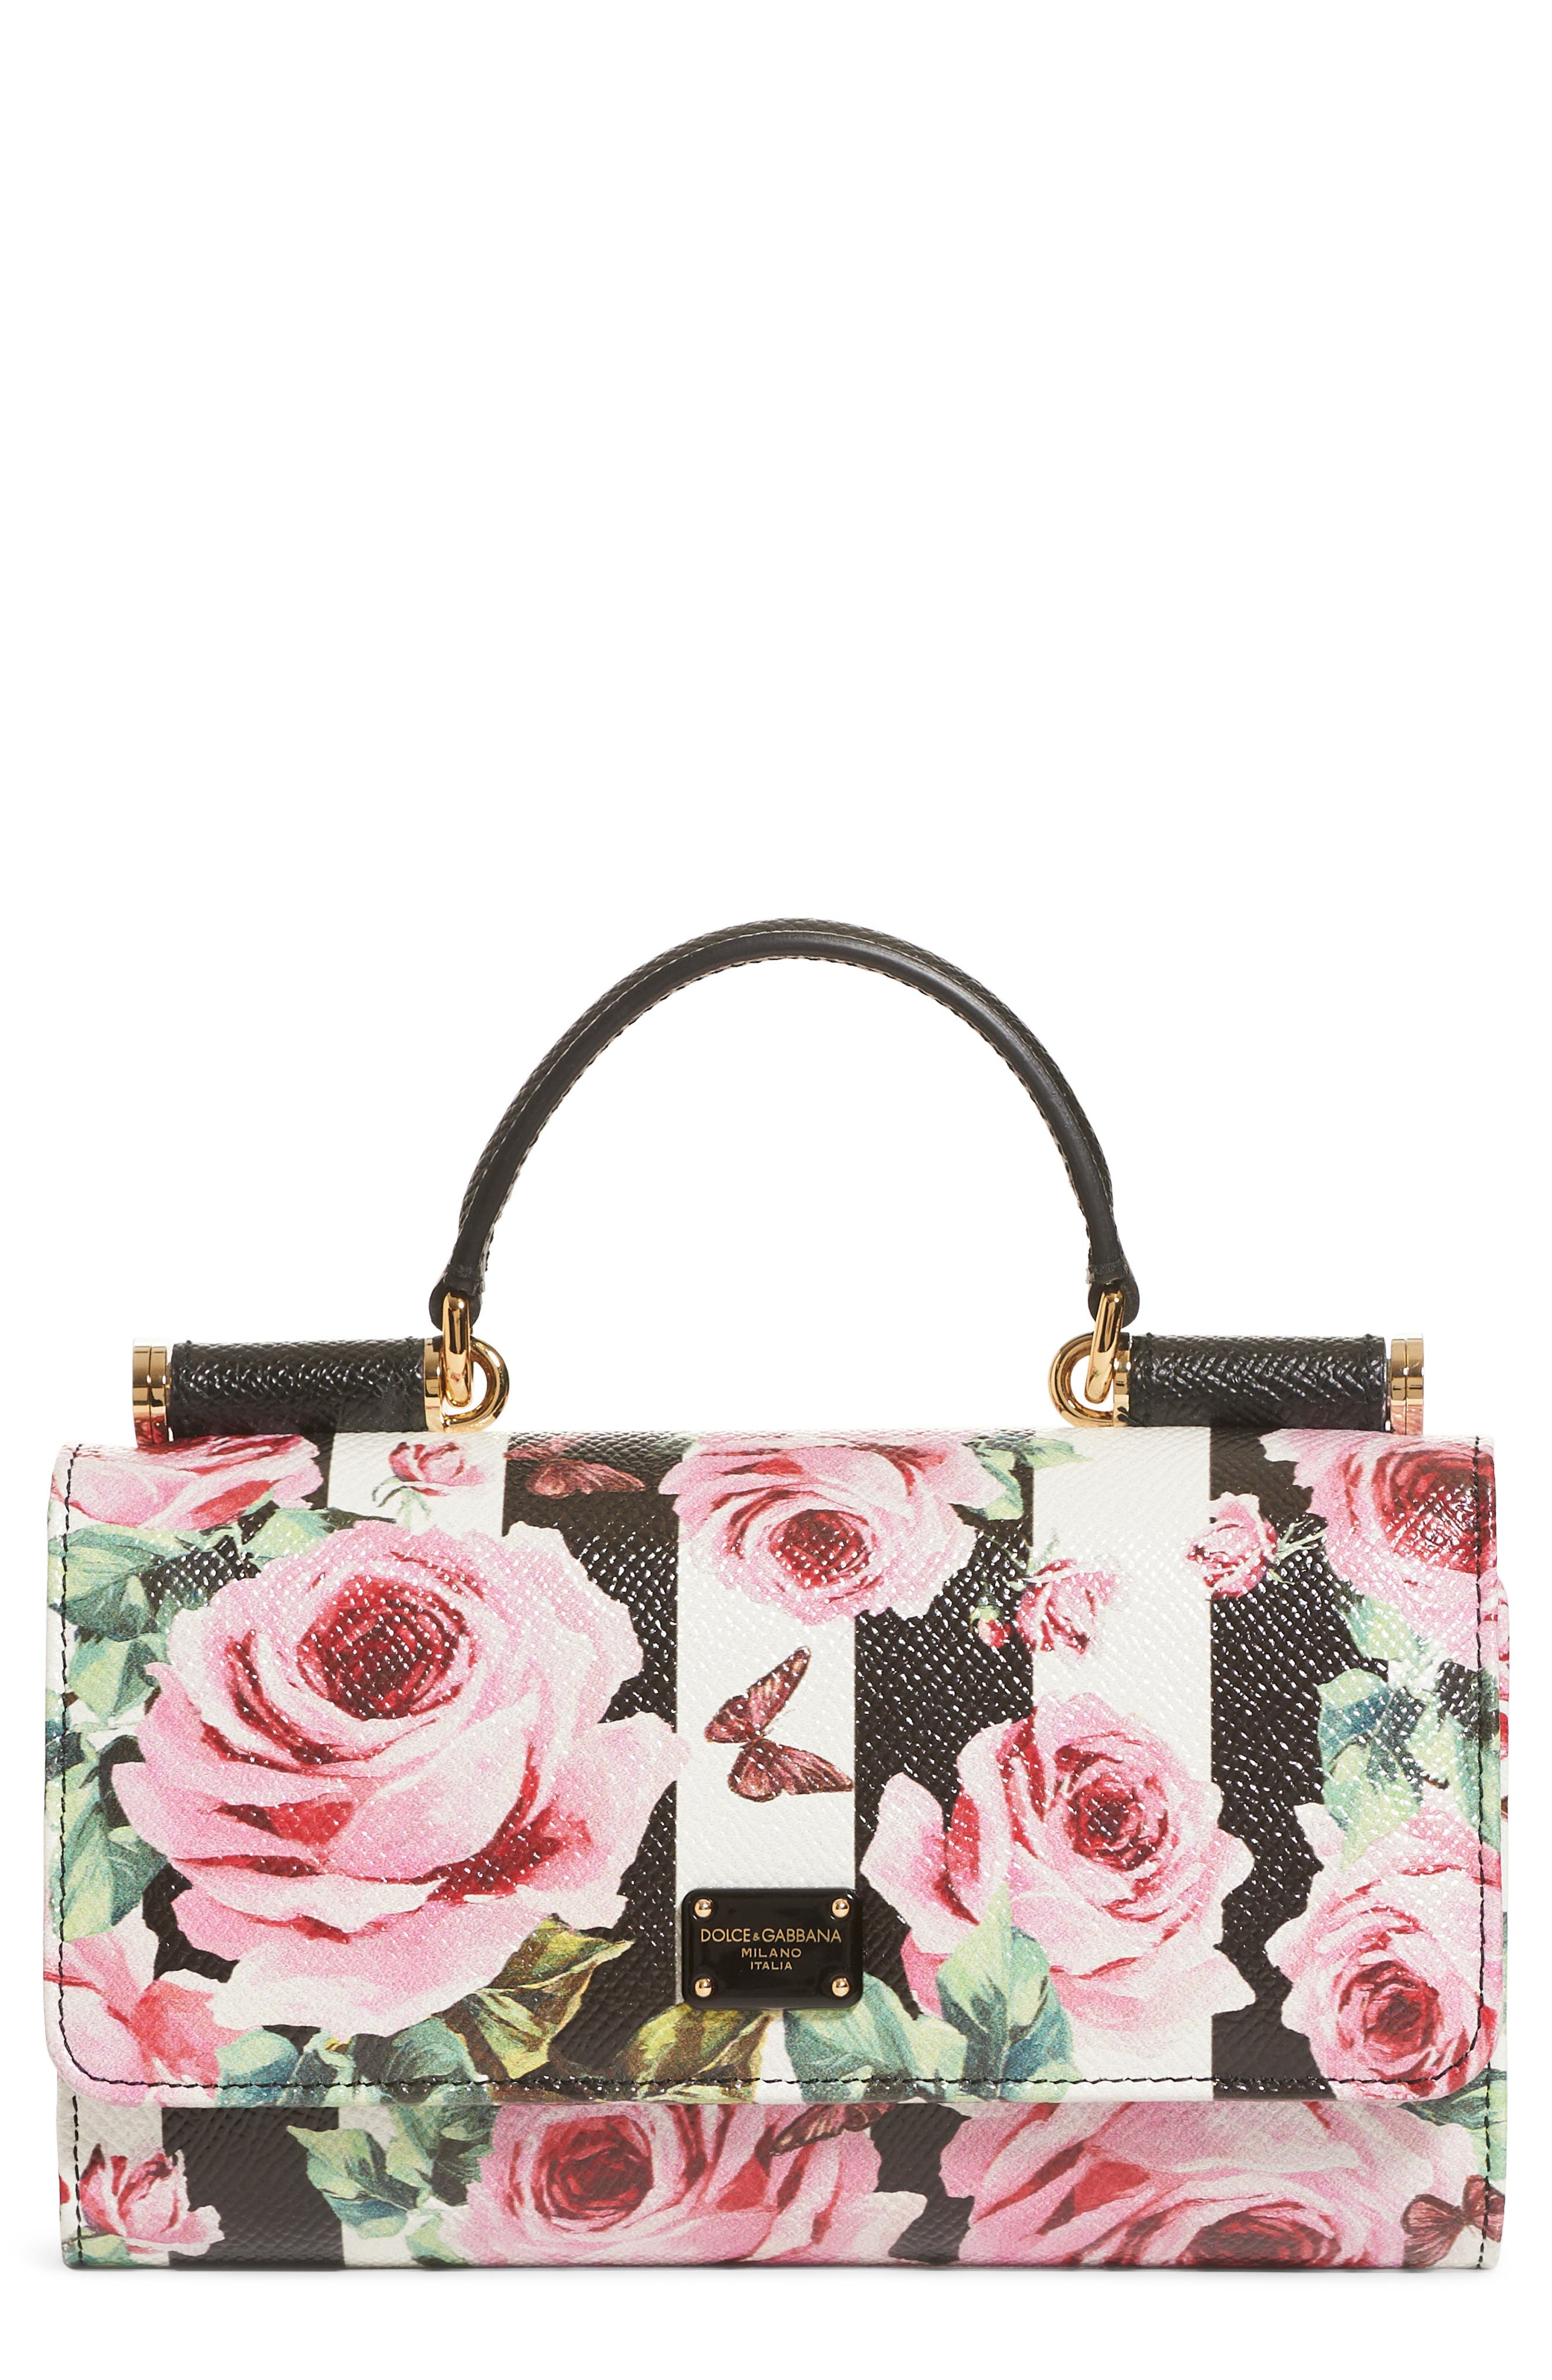 Mini Stripe Floral Calfskin Leather Bag,                         Main,                         color, 650